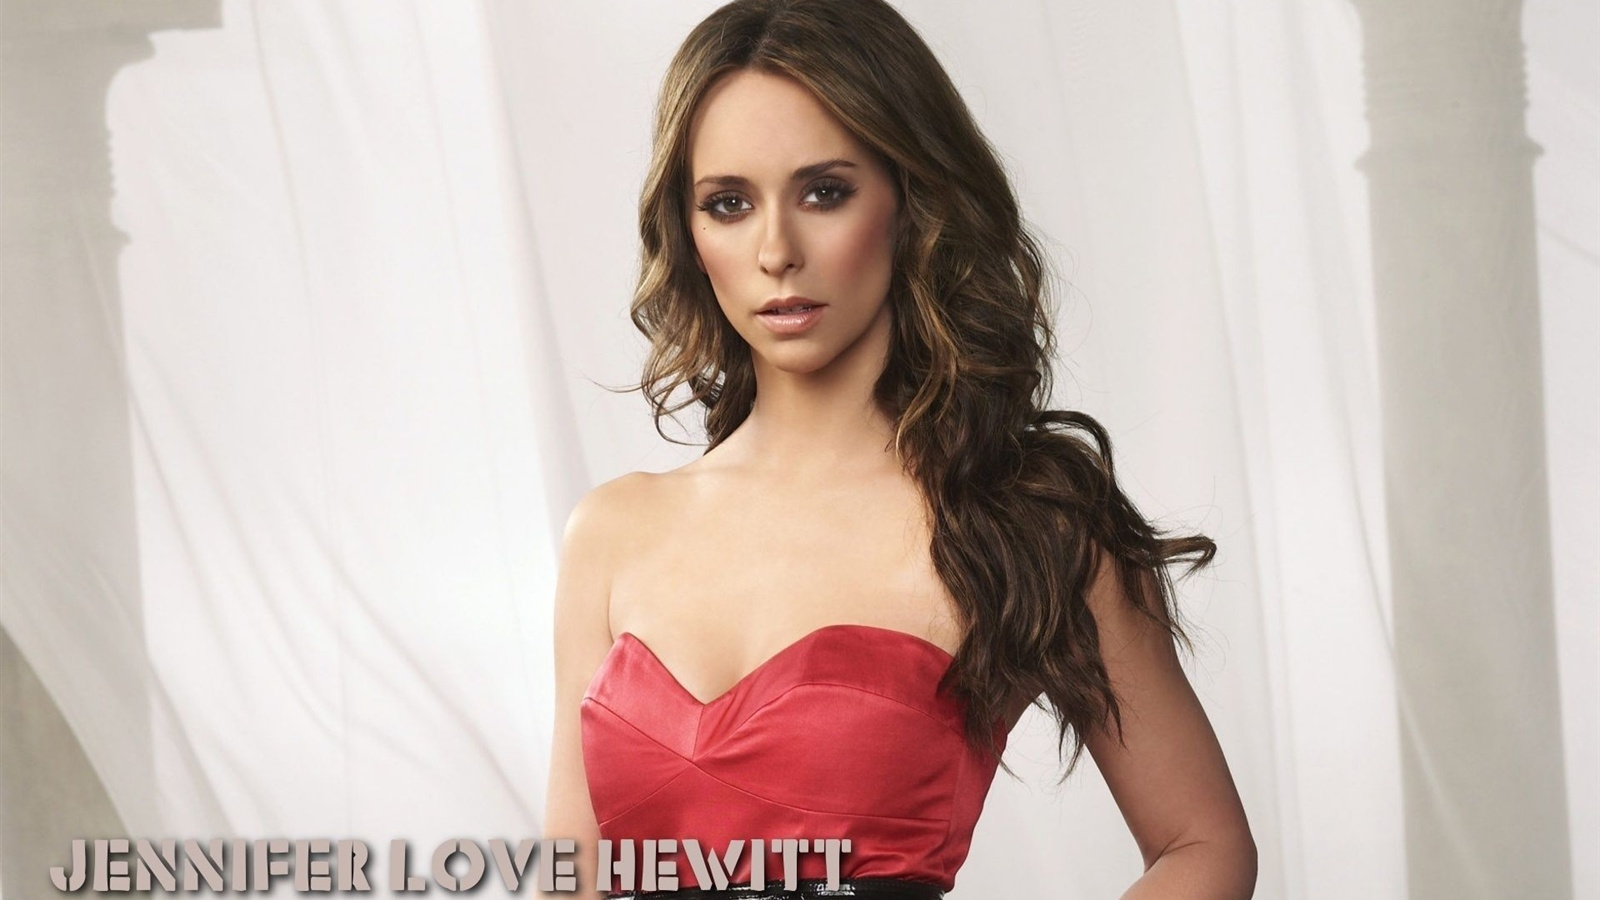 Jennifer Love Hewitt 01 wallpaper - 1600x900